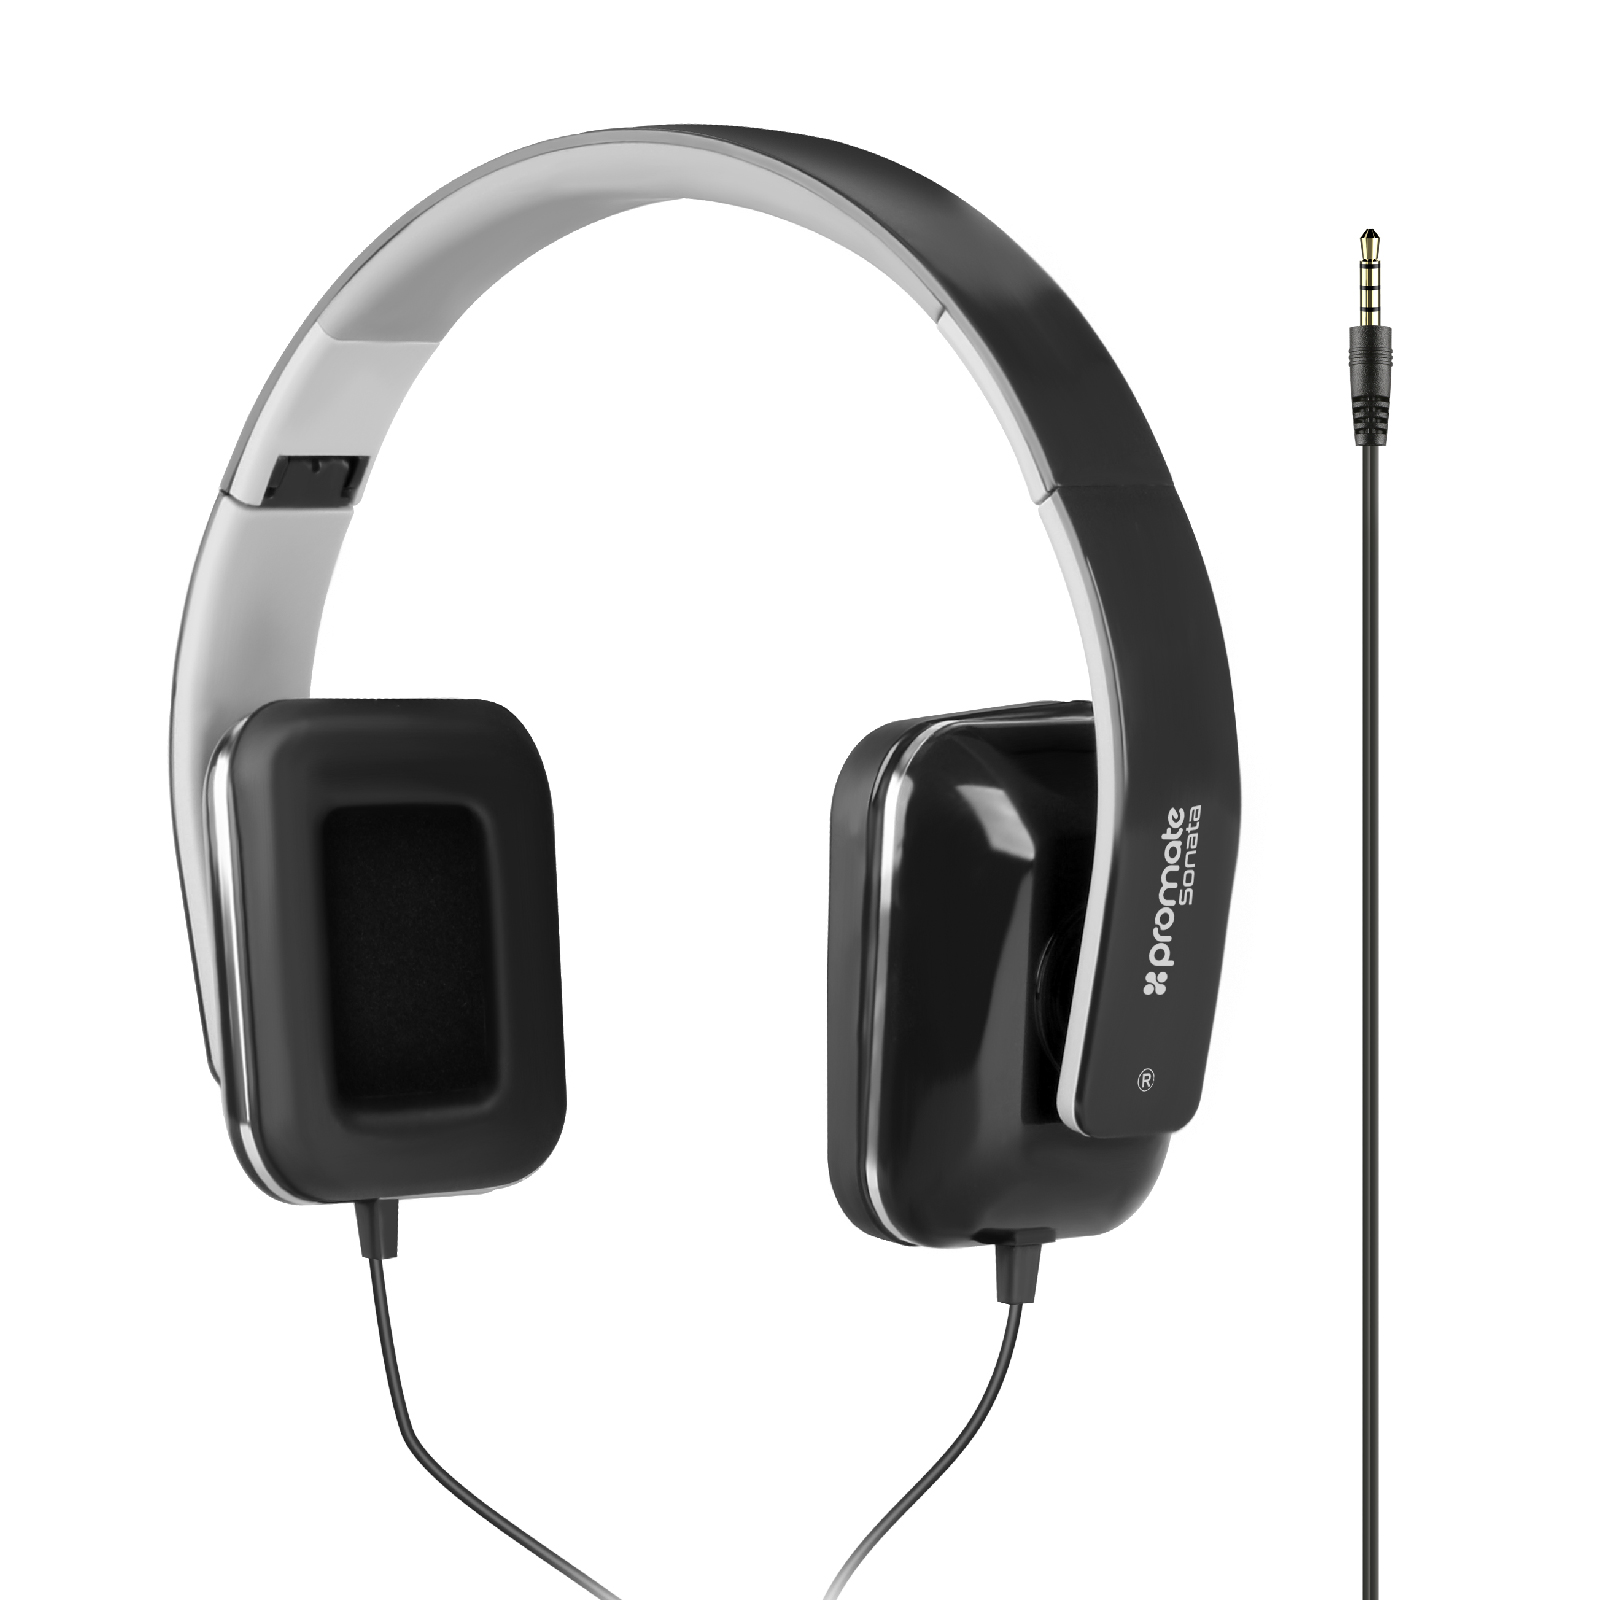 f0358ea0698 PROMATE Foldable Over-The-Ear Wired Stereo Headset. Black. - AVN ...